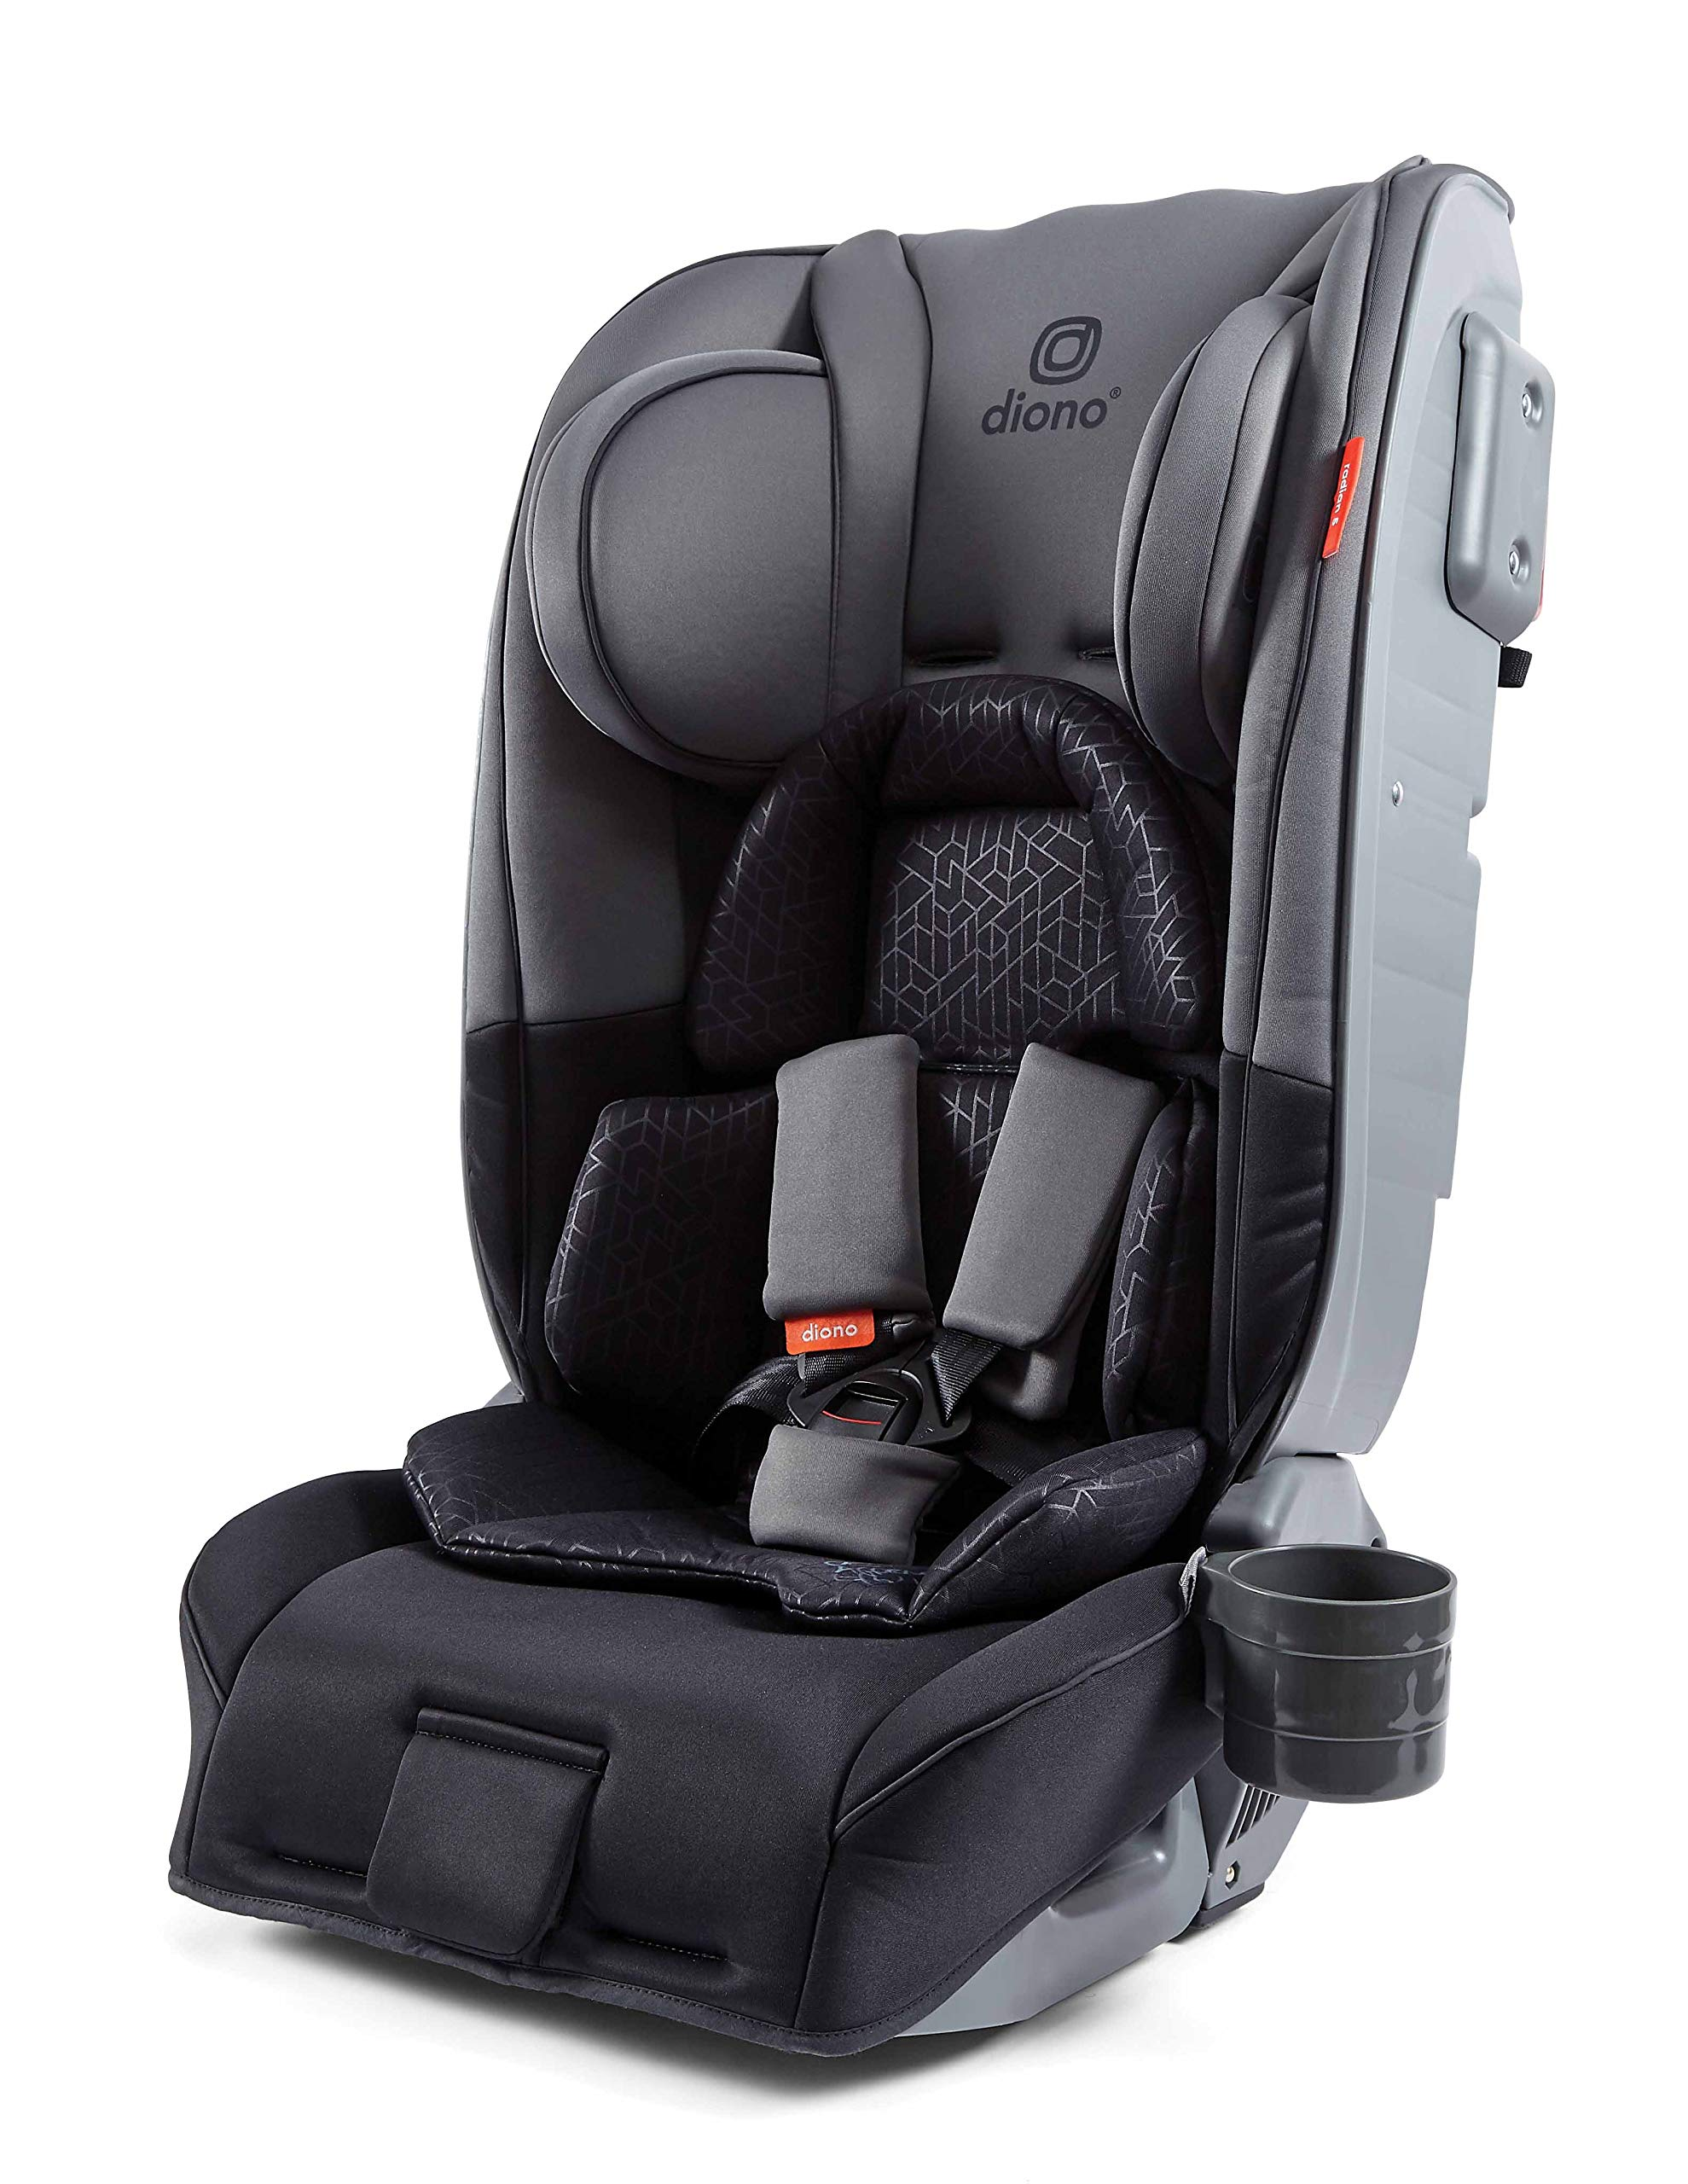 Diono Radian 5, Group 0+/1/2 Car Seat, Extended Rear-Facing from Birth to 25kg, Forward-Facing 9-25kg, Dark Grey Diono The Original 3 Across Car Seat: Radian 5's clever design has a slimline profile allowing you to install three across in your vehicle without compromising internal seat dimensions or comfort. Worth the weight: Engineered with the famous Diono full, high-strength steel core that forms an unyielding structure to shield and protect your little one. Extended rear-facing: Keep your little ones in the safest travel position for as long as possible, from birth up to 25 kgs (approx. 6 years old). 2